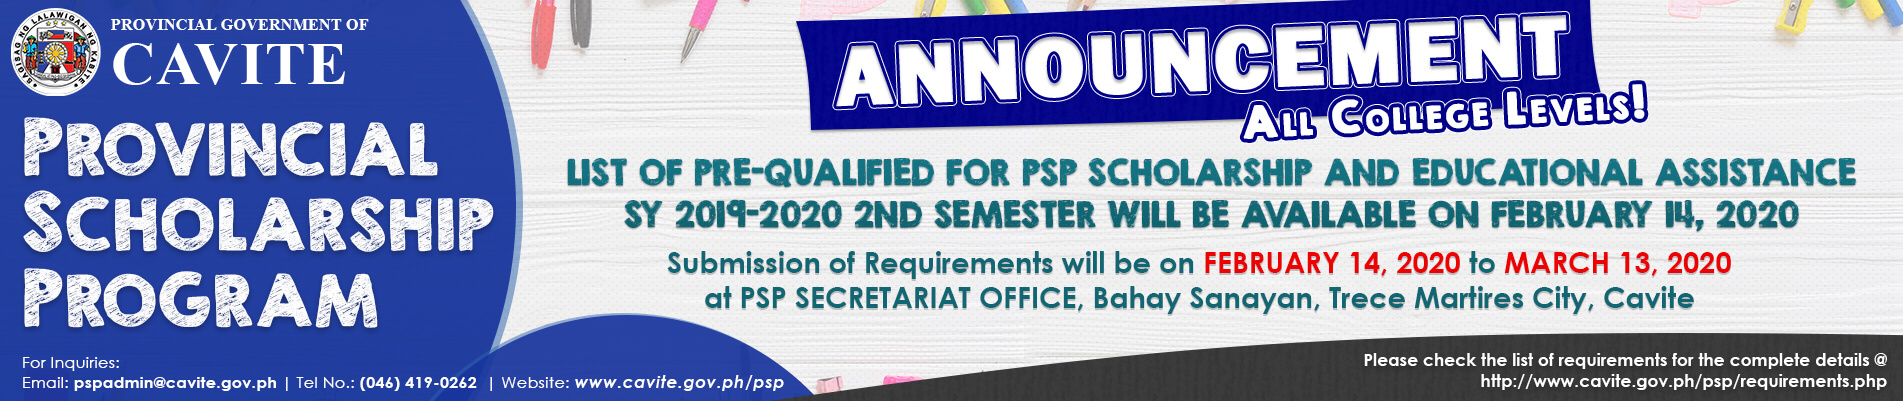 PSP Pre-Qualified